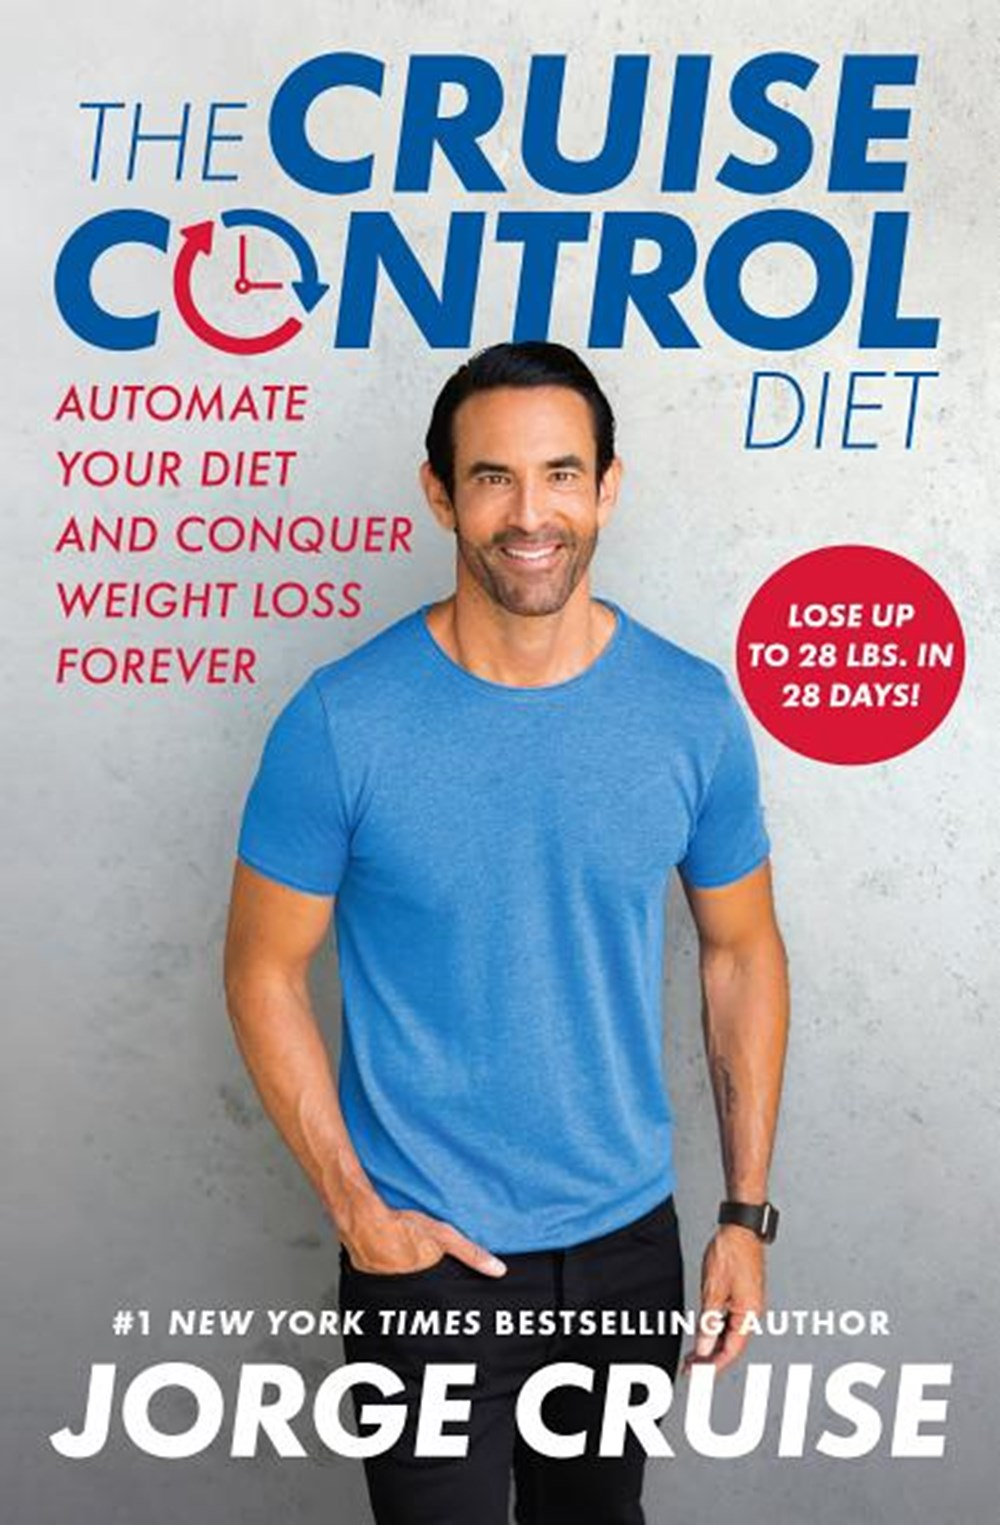 Cruise Control Diet Automate Your Diet and Conquer Weight Loss Forever